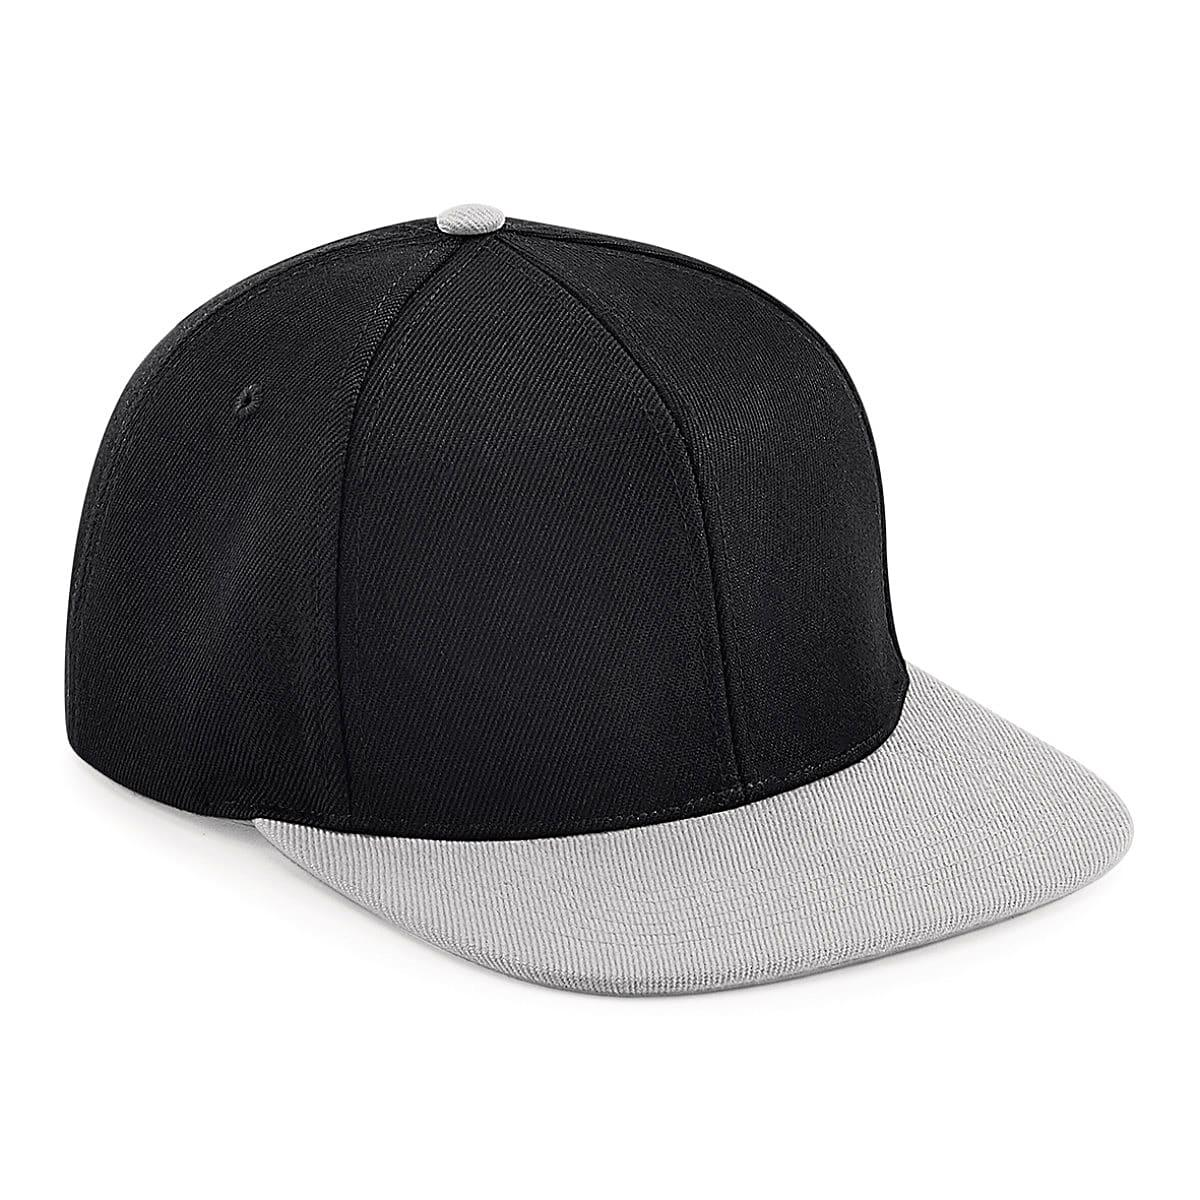 Original Flat Peak 6 Panel Snapback Cap in Black / Grey (Product Code: B661)